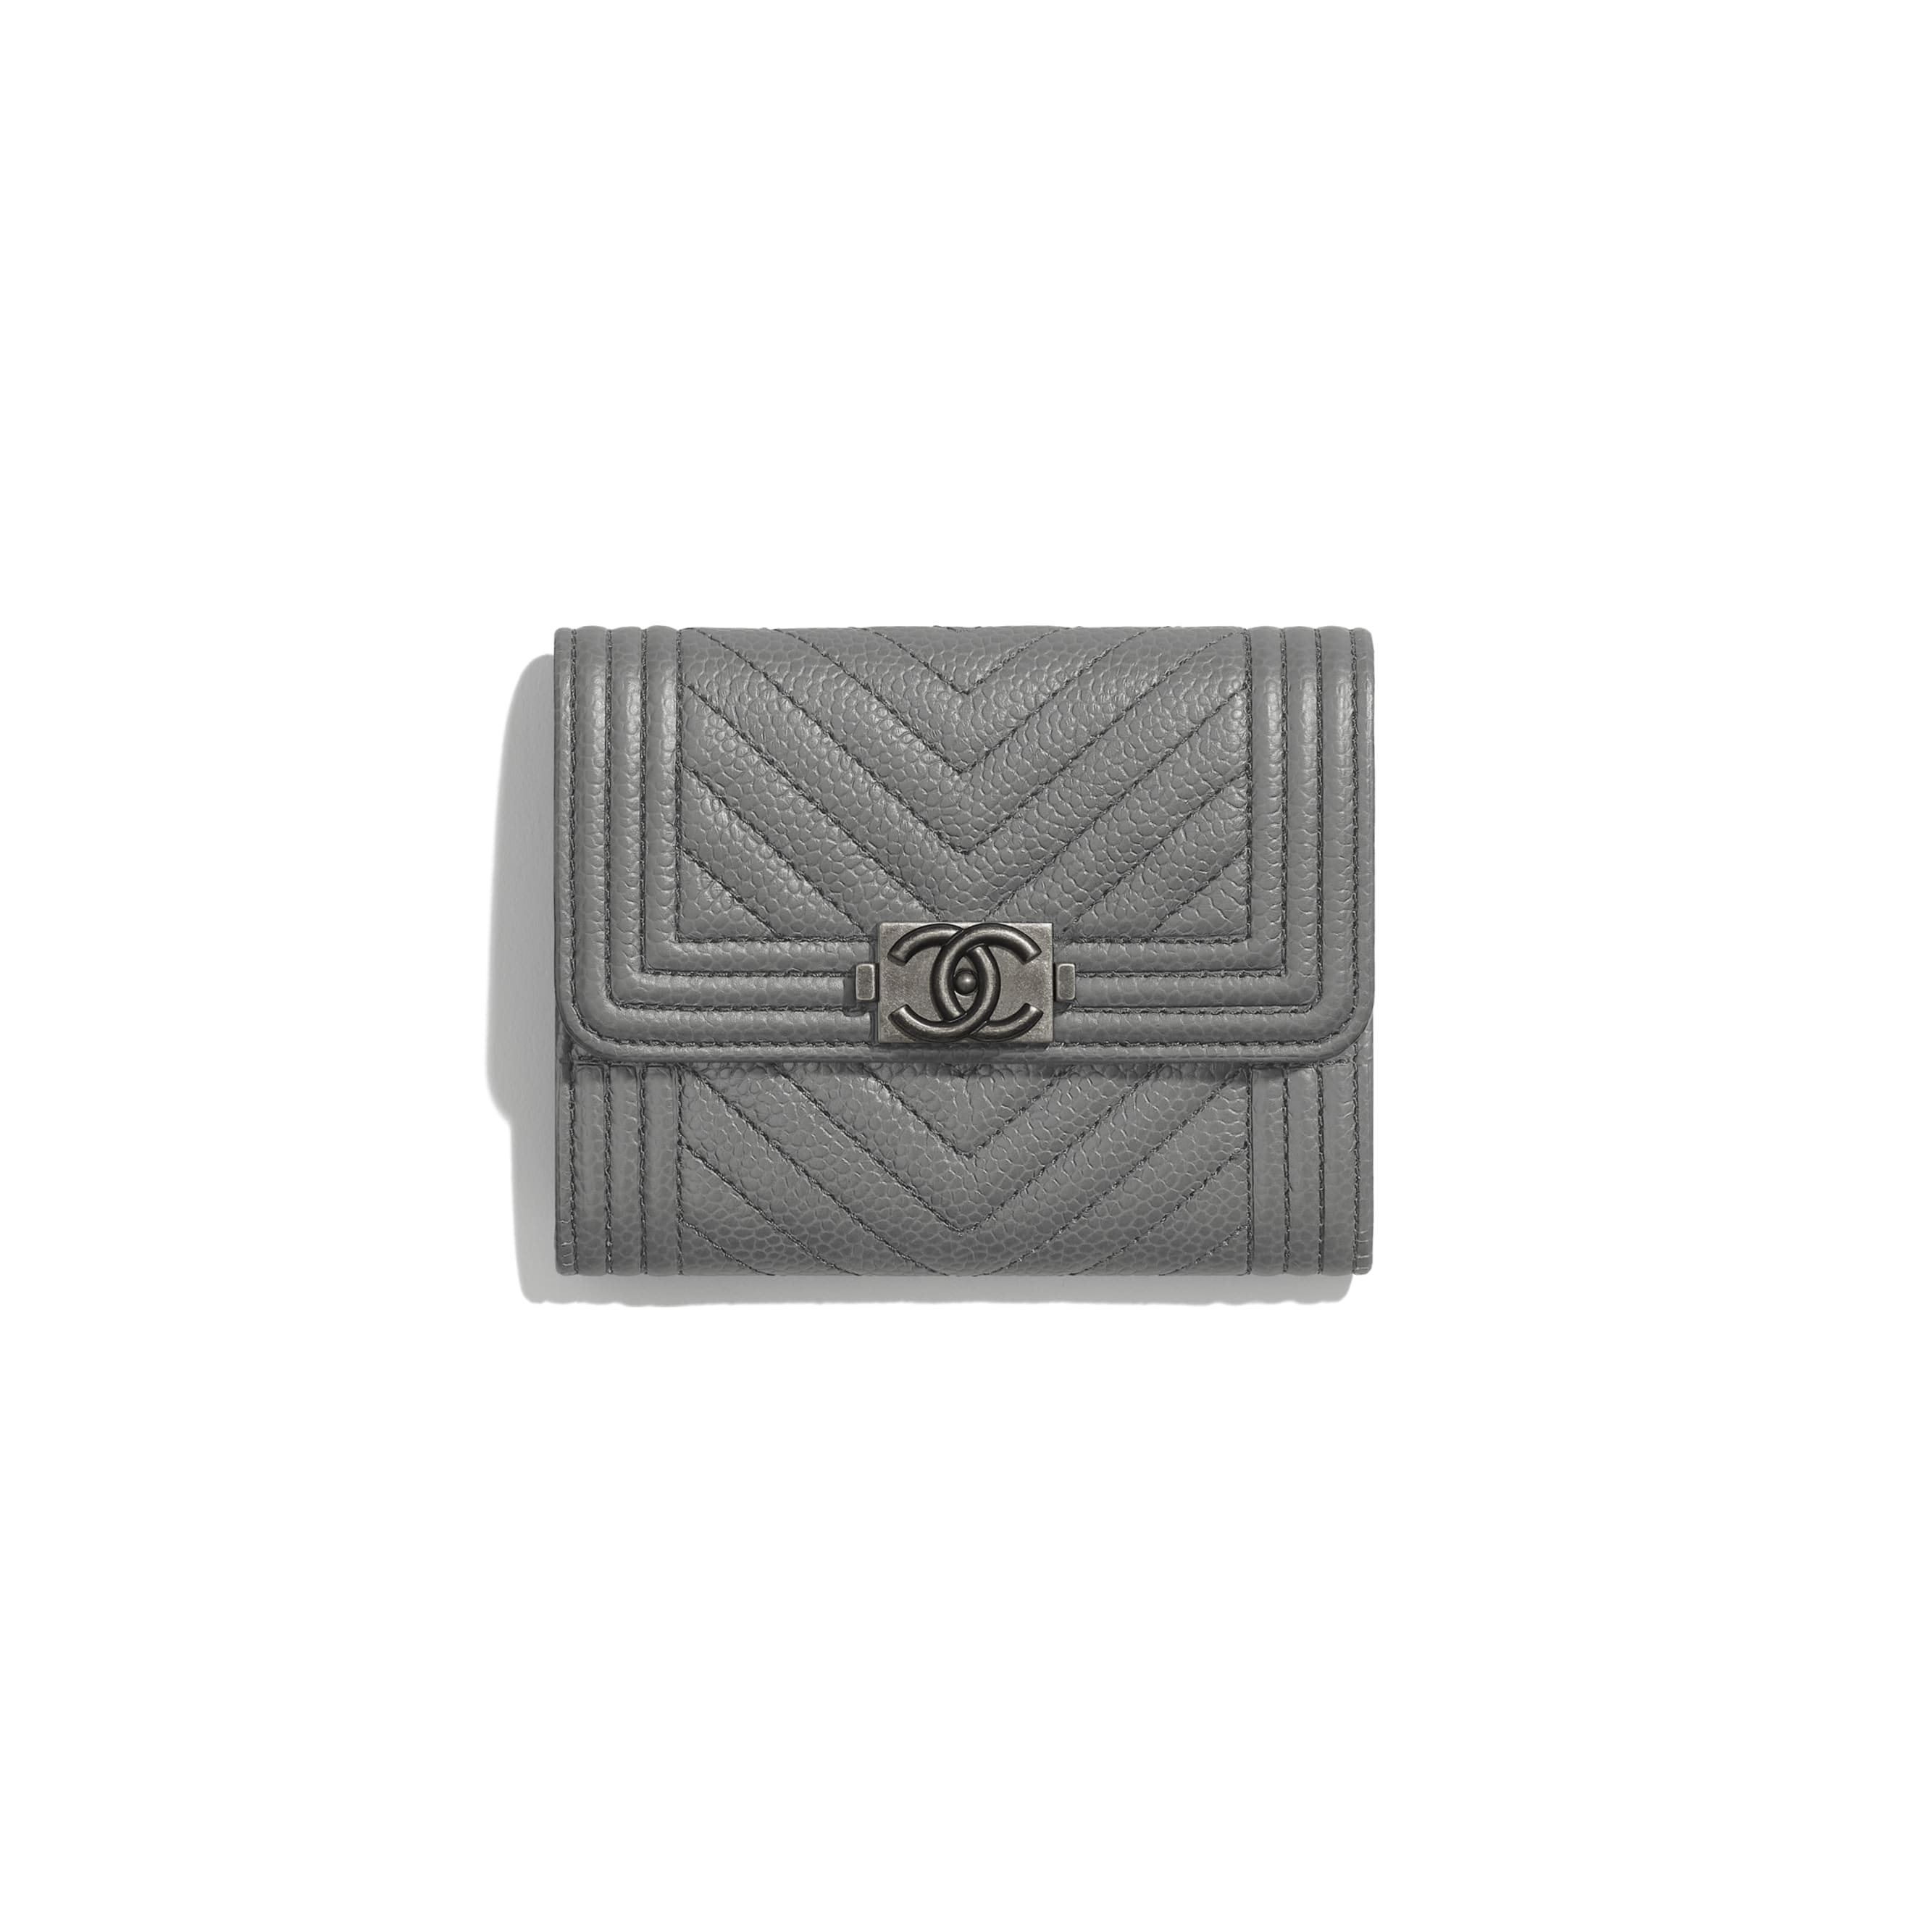 BOY CHANEL Flap Coin Purse - Grey - Grained Calfskin & Ruthenium-Finish Metal - Default view - see standard sized version